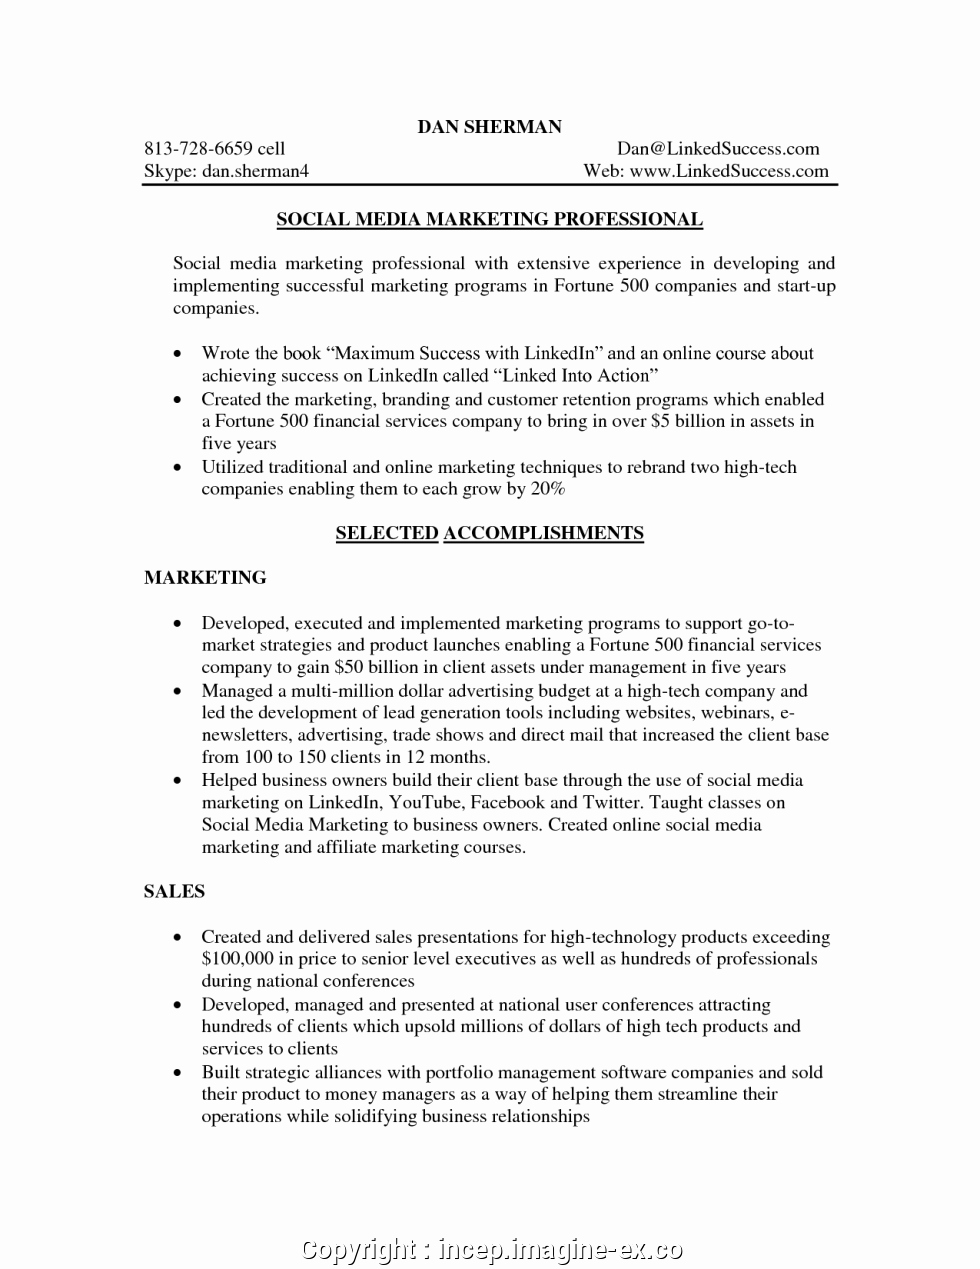 Social Media Manager Resumes Awesome Free social Media Manager Resume Sample Media Manager